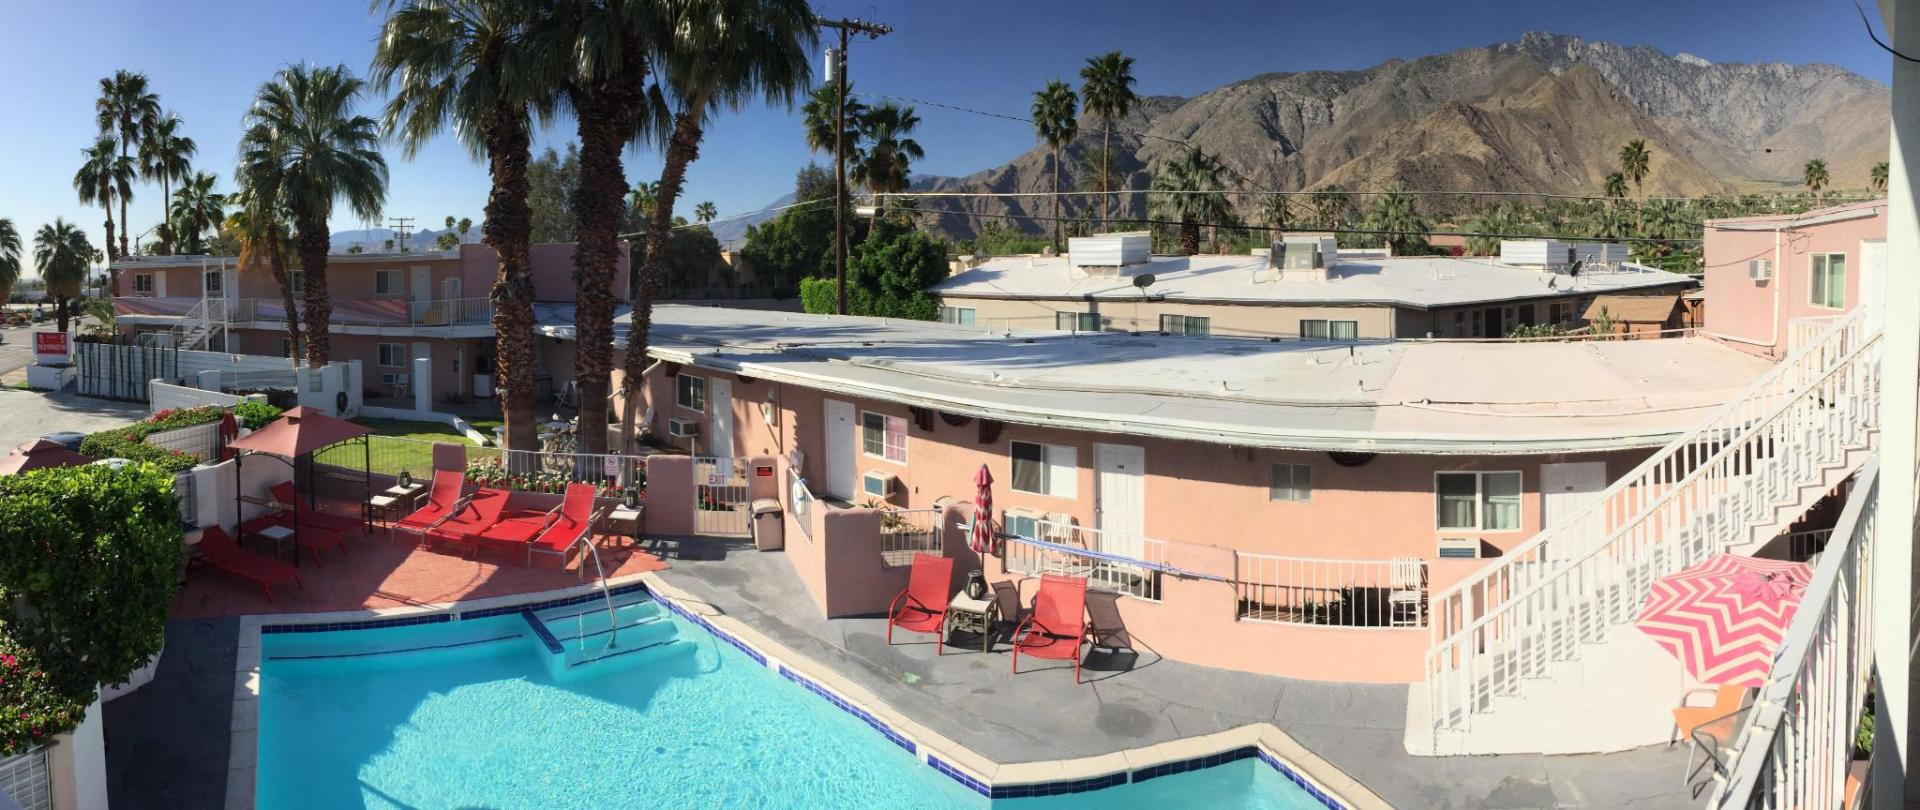 Expansive Mountain View and Pool.jpeg